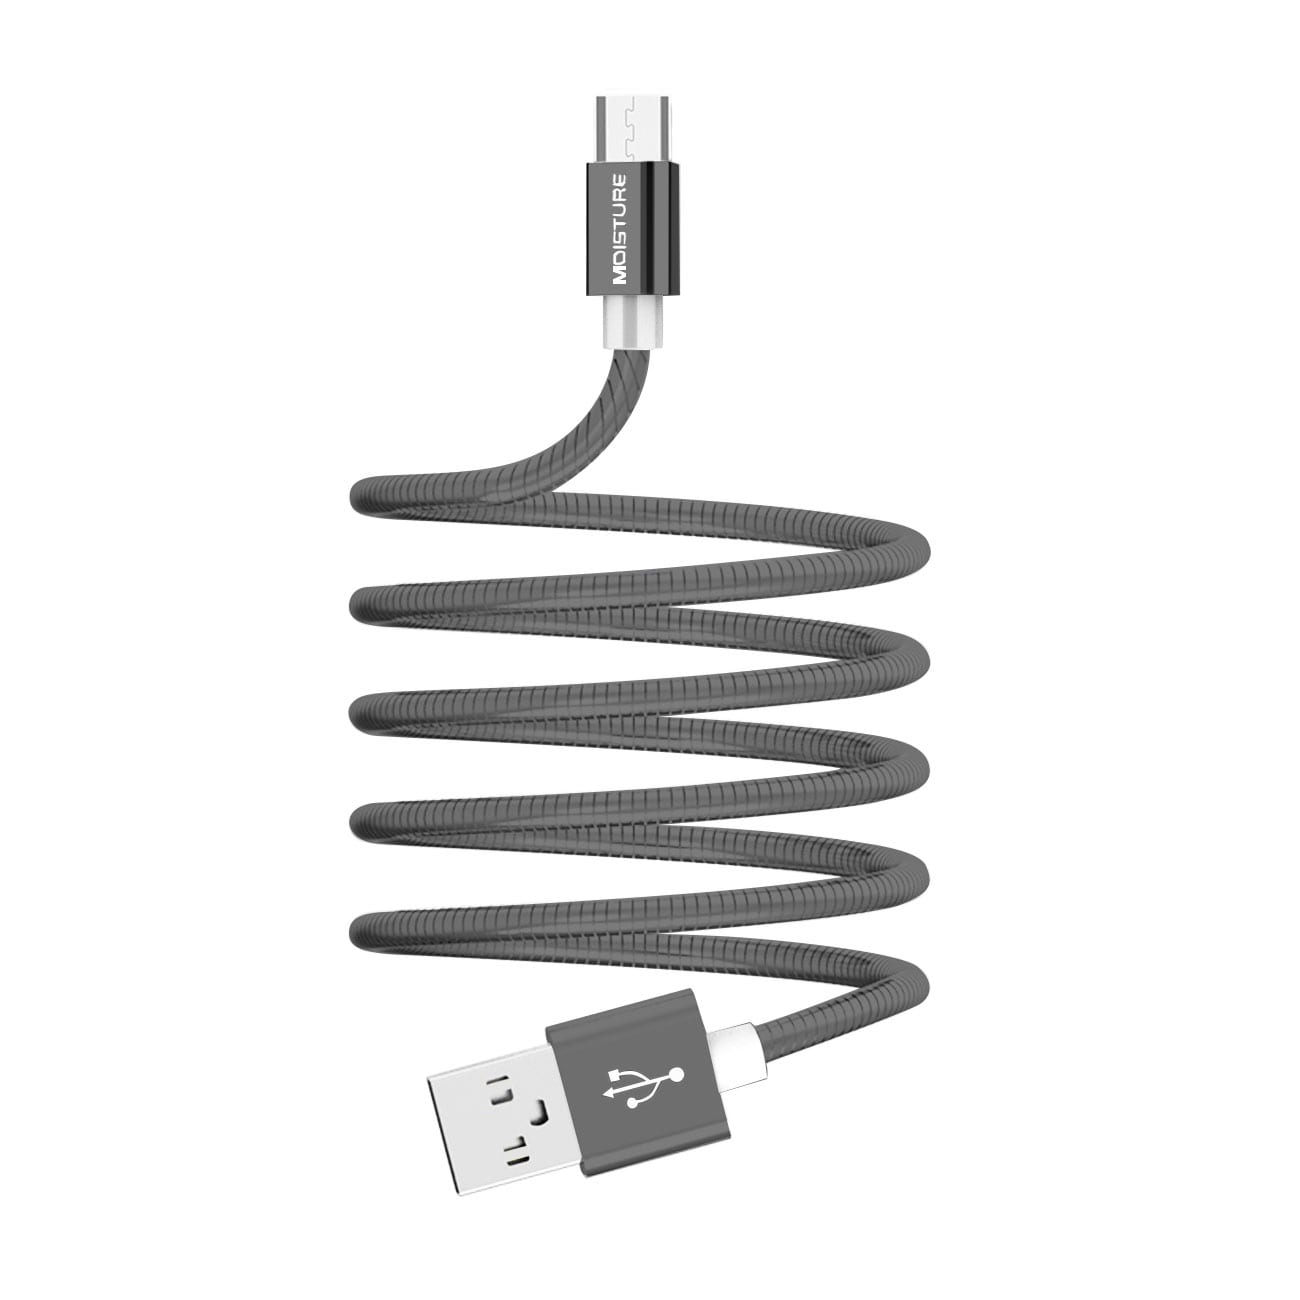 Moisture 2.6A Premium Full Hi-Speed Data Cable In Gray